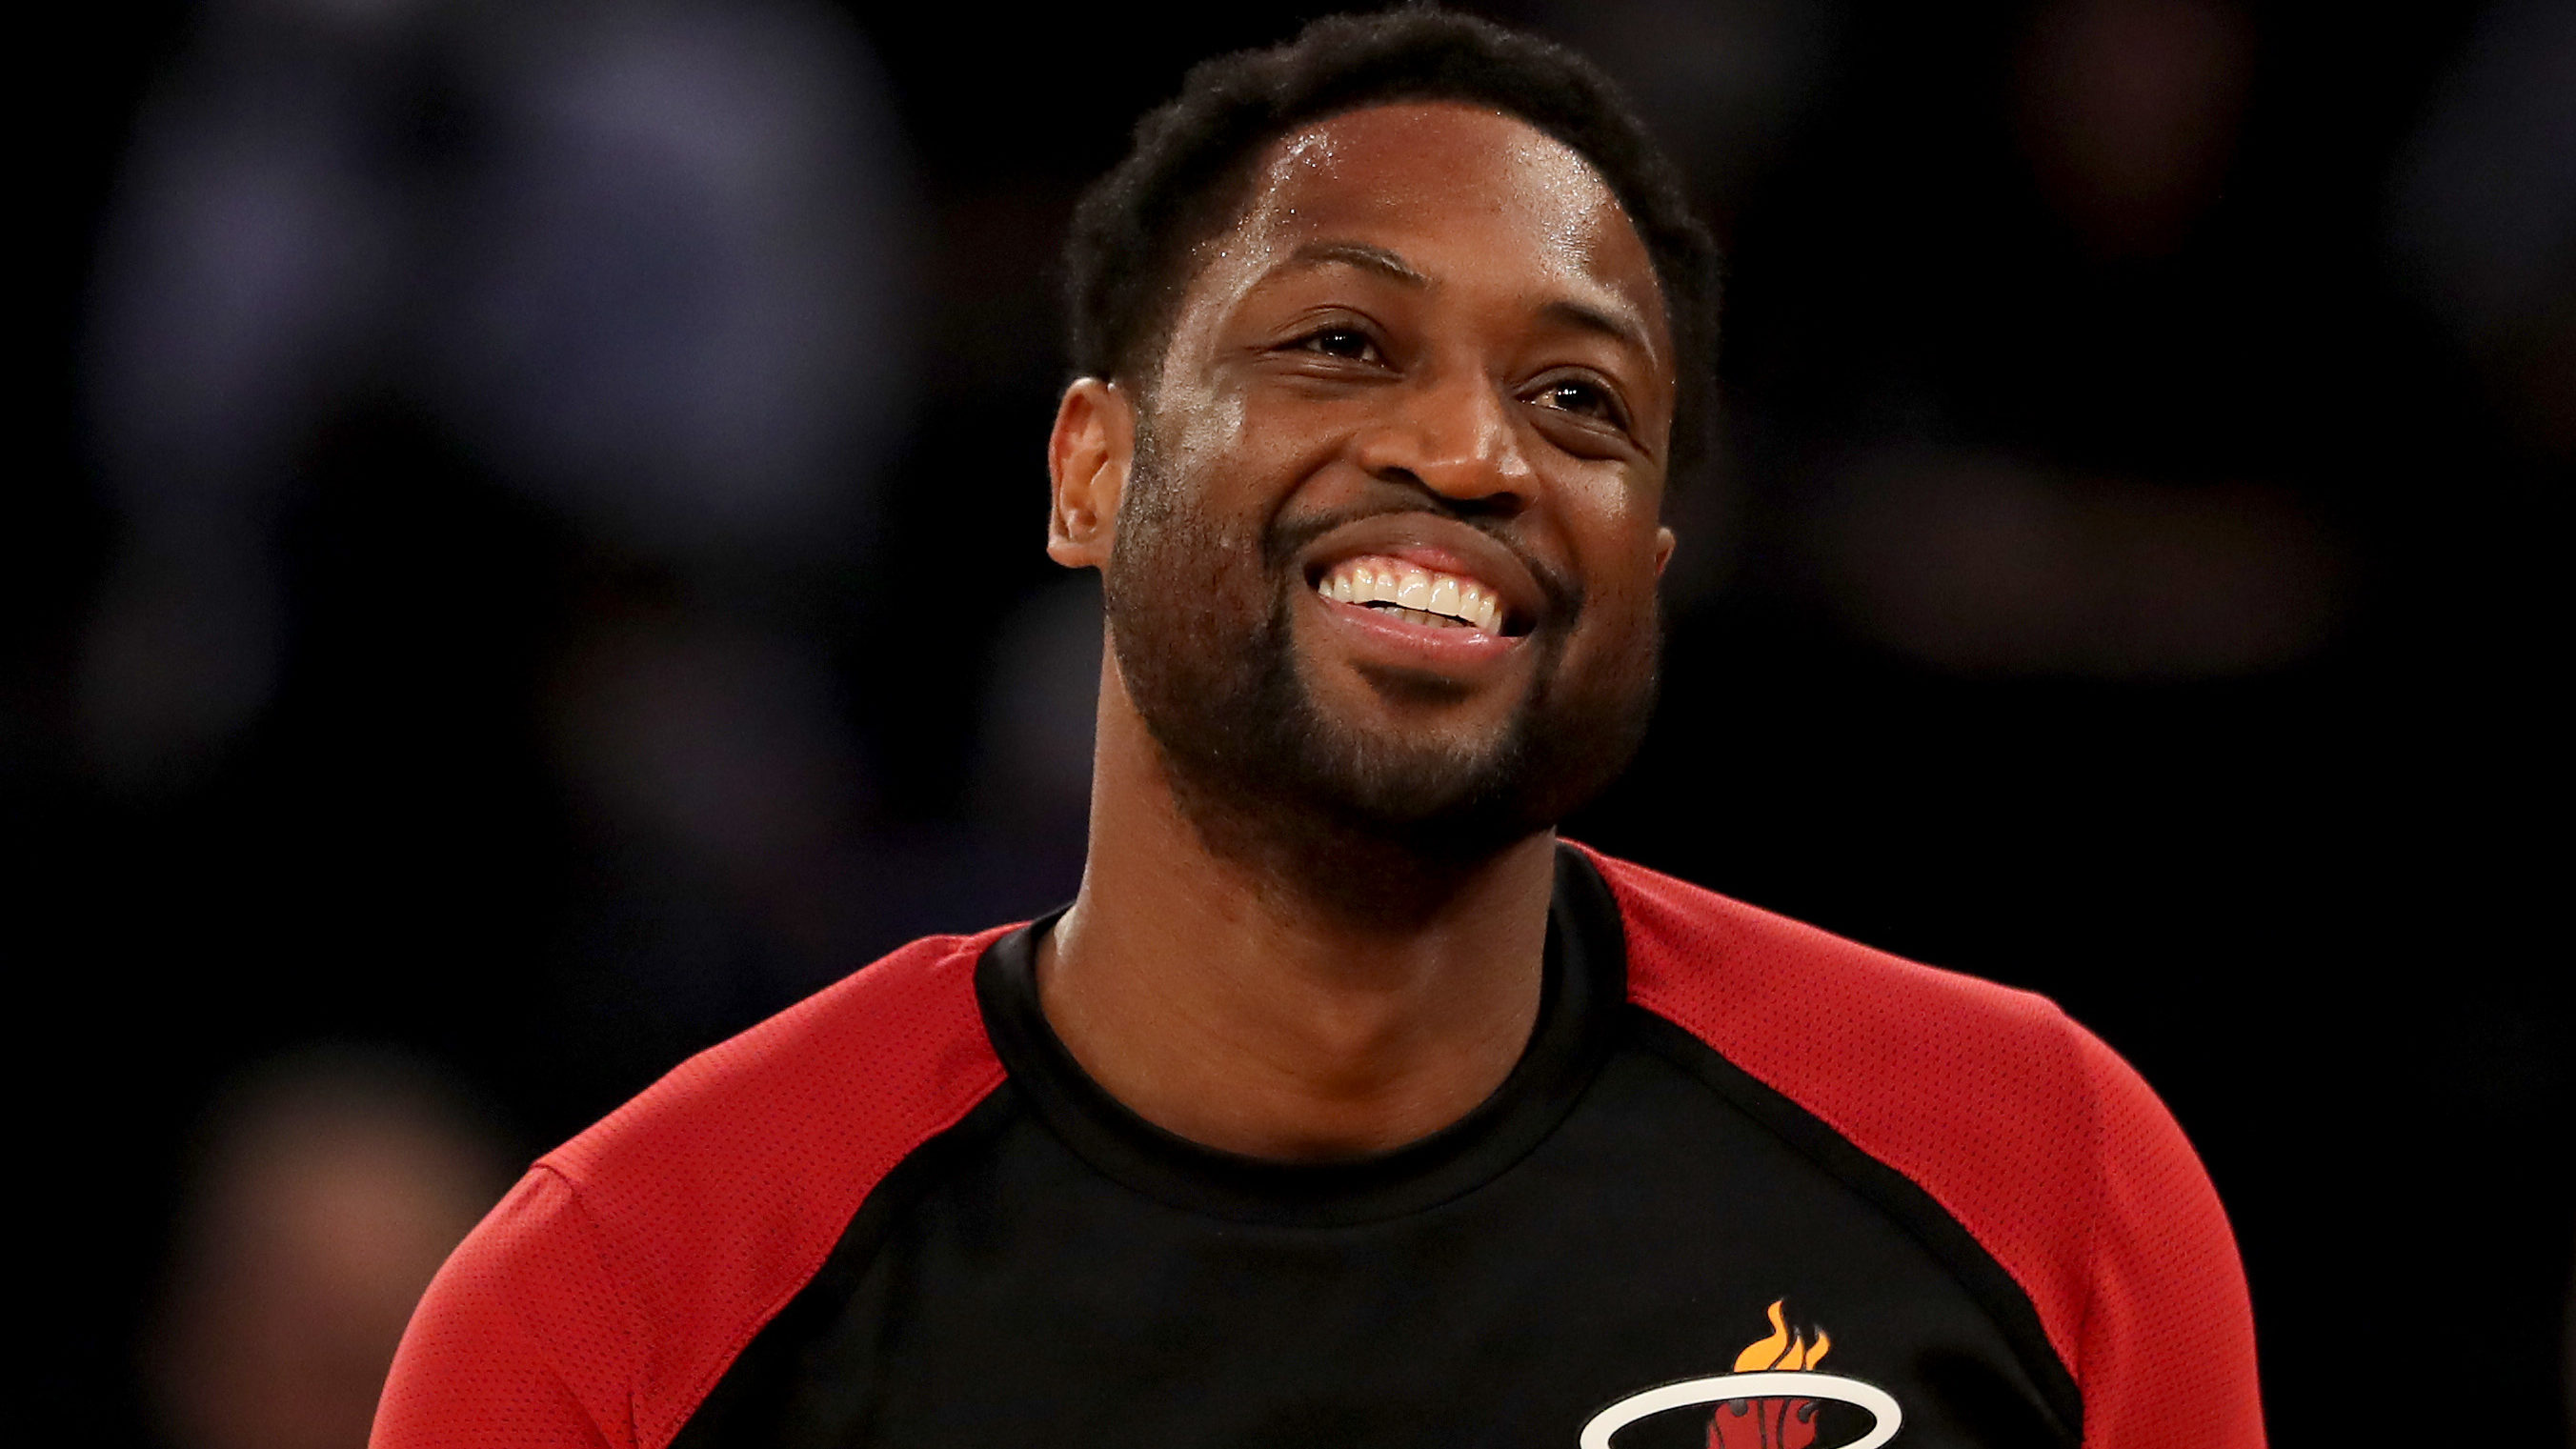 NBA Dwayne Wade LA Lakers LeBron James